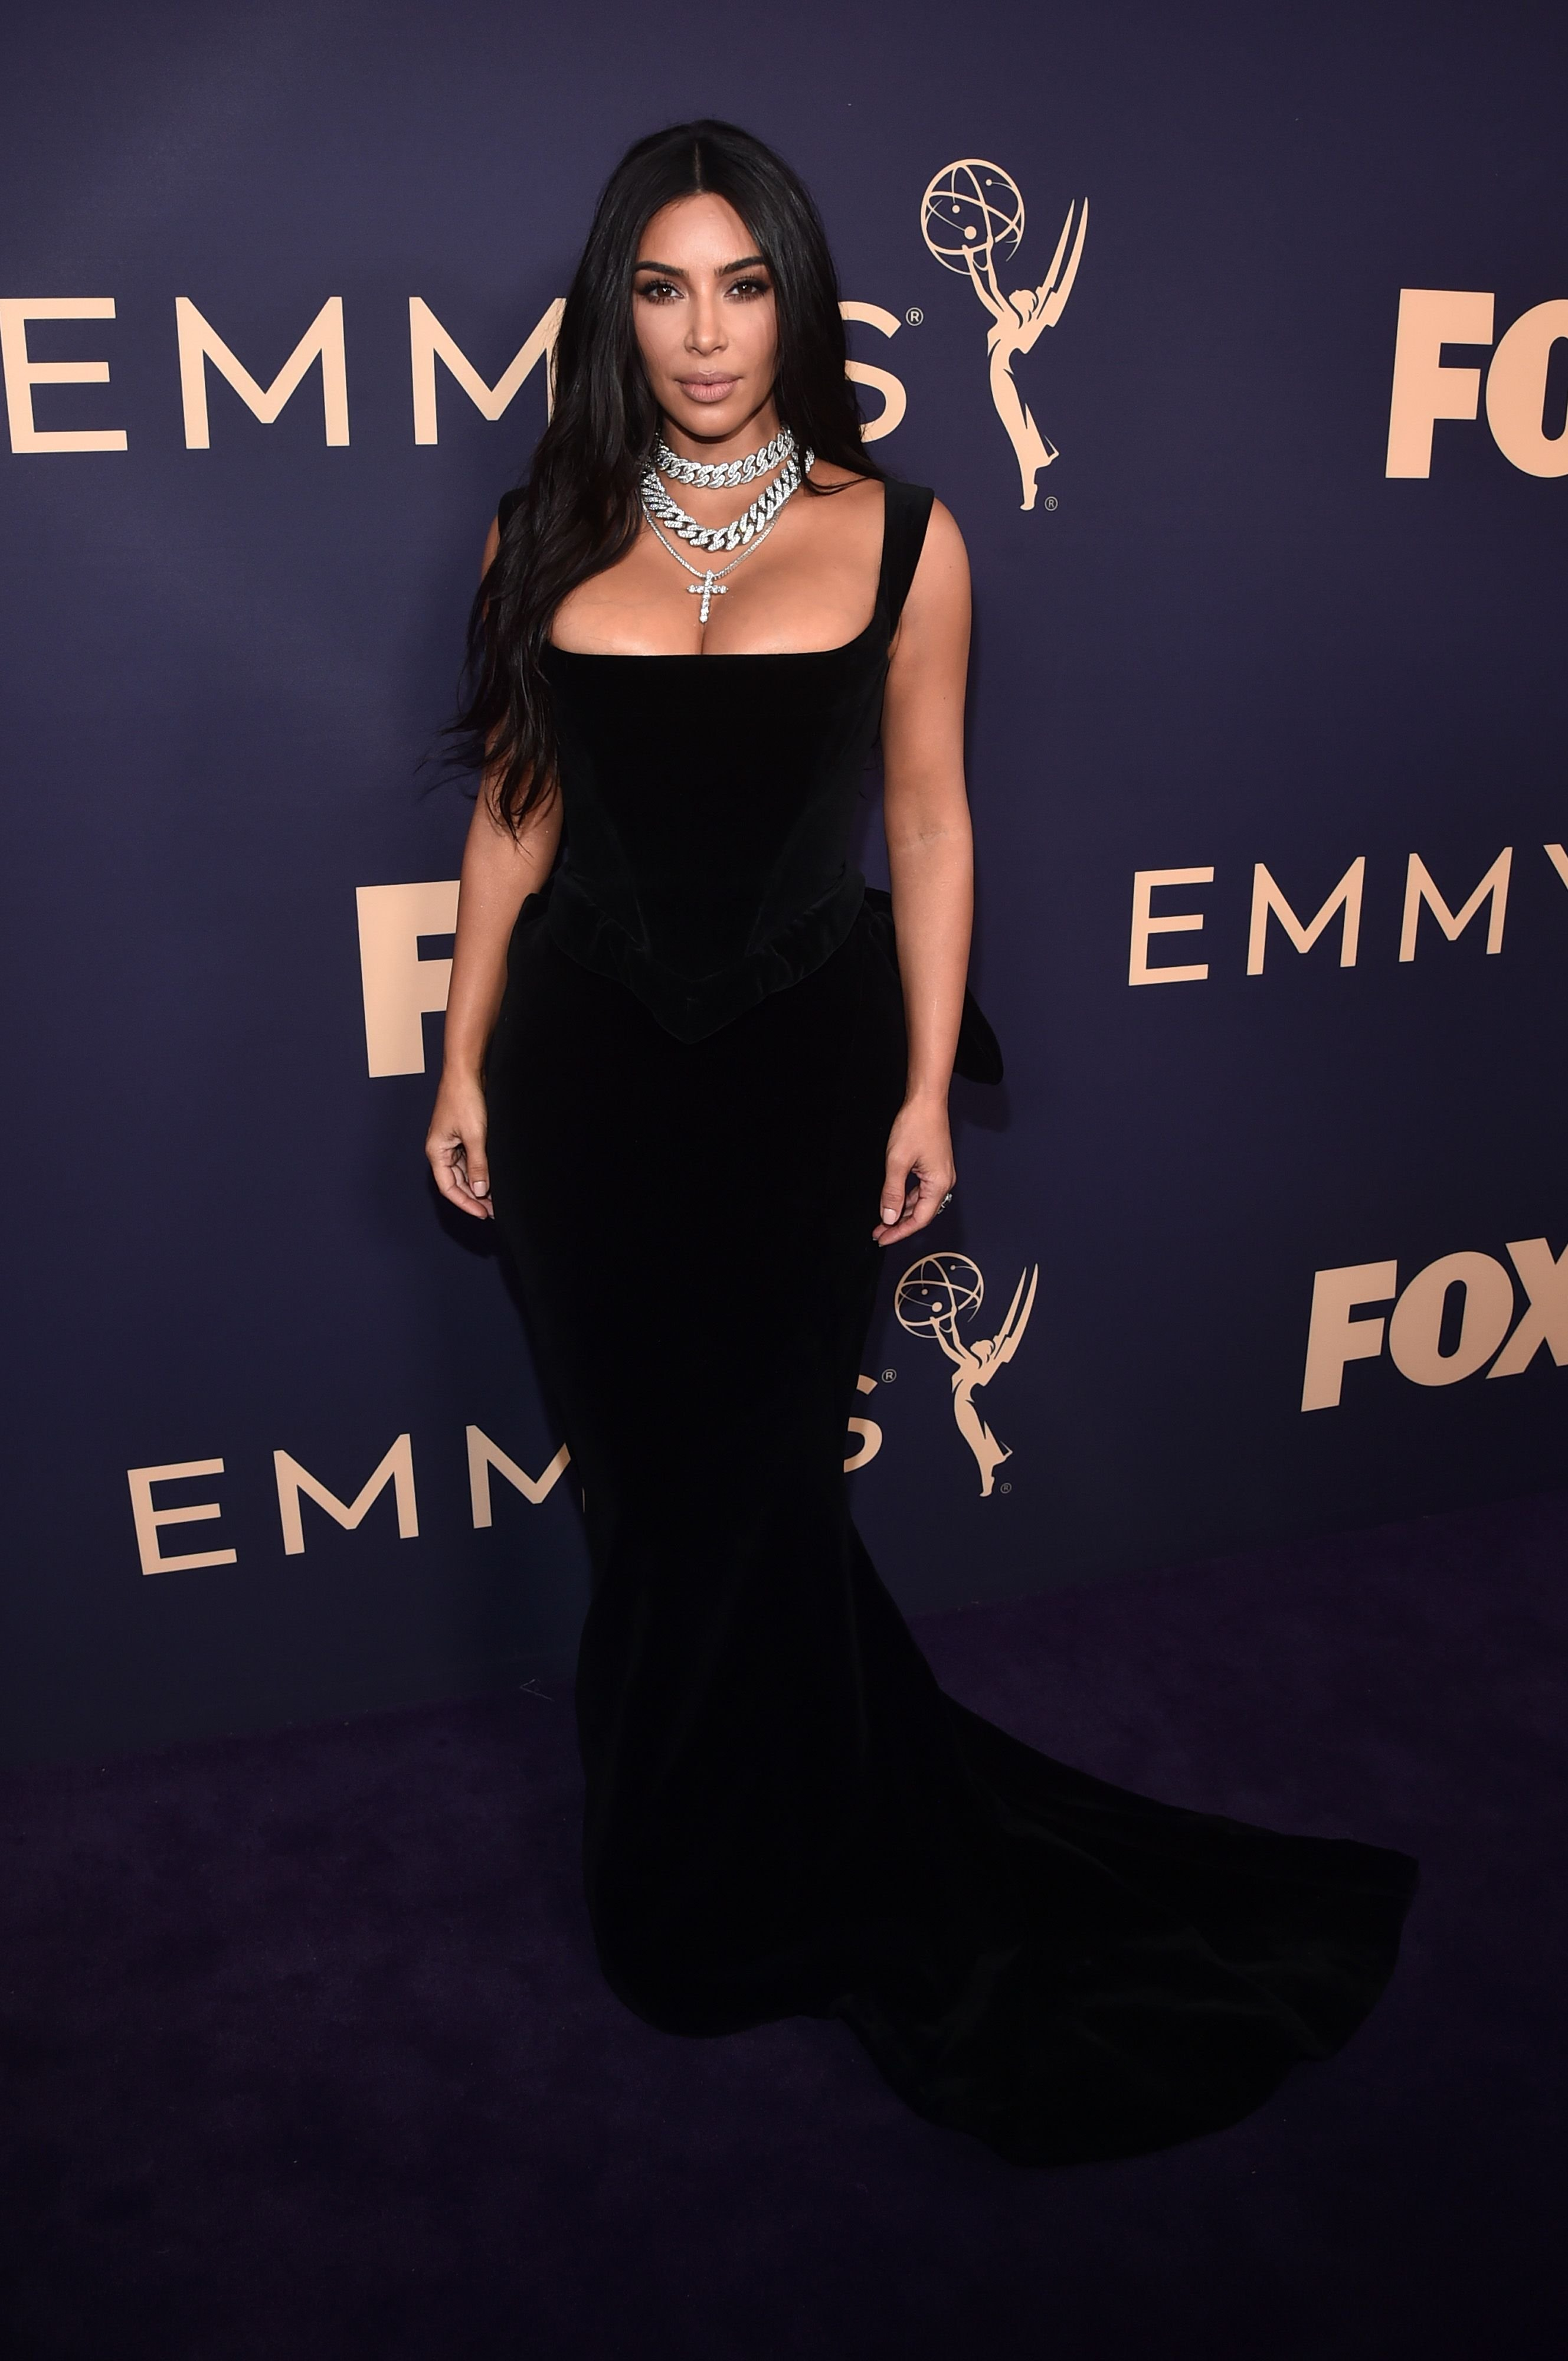 Kardashian wearing a gorgeous black dress at the Emmys Awards in 2019.   Photo: Getty Images